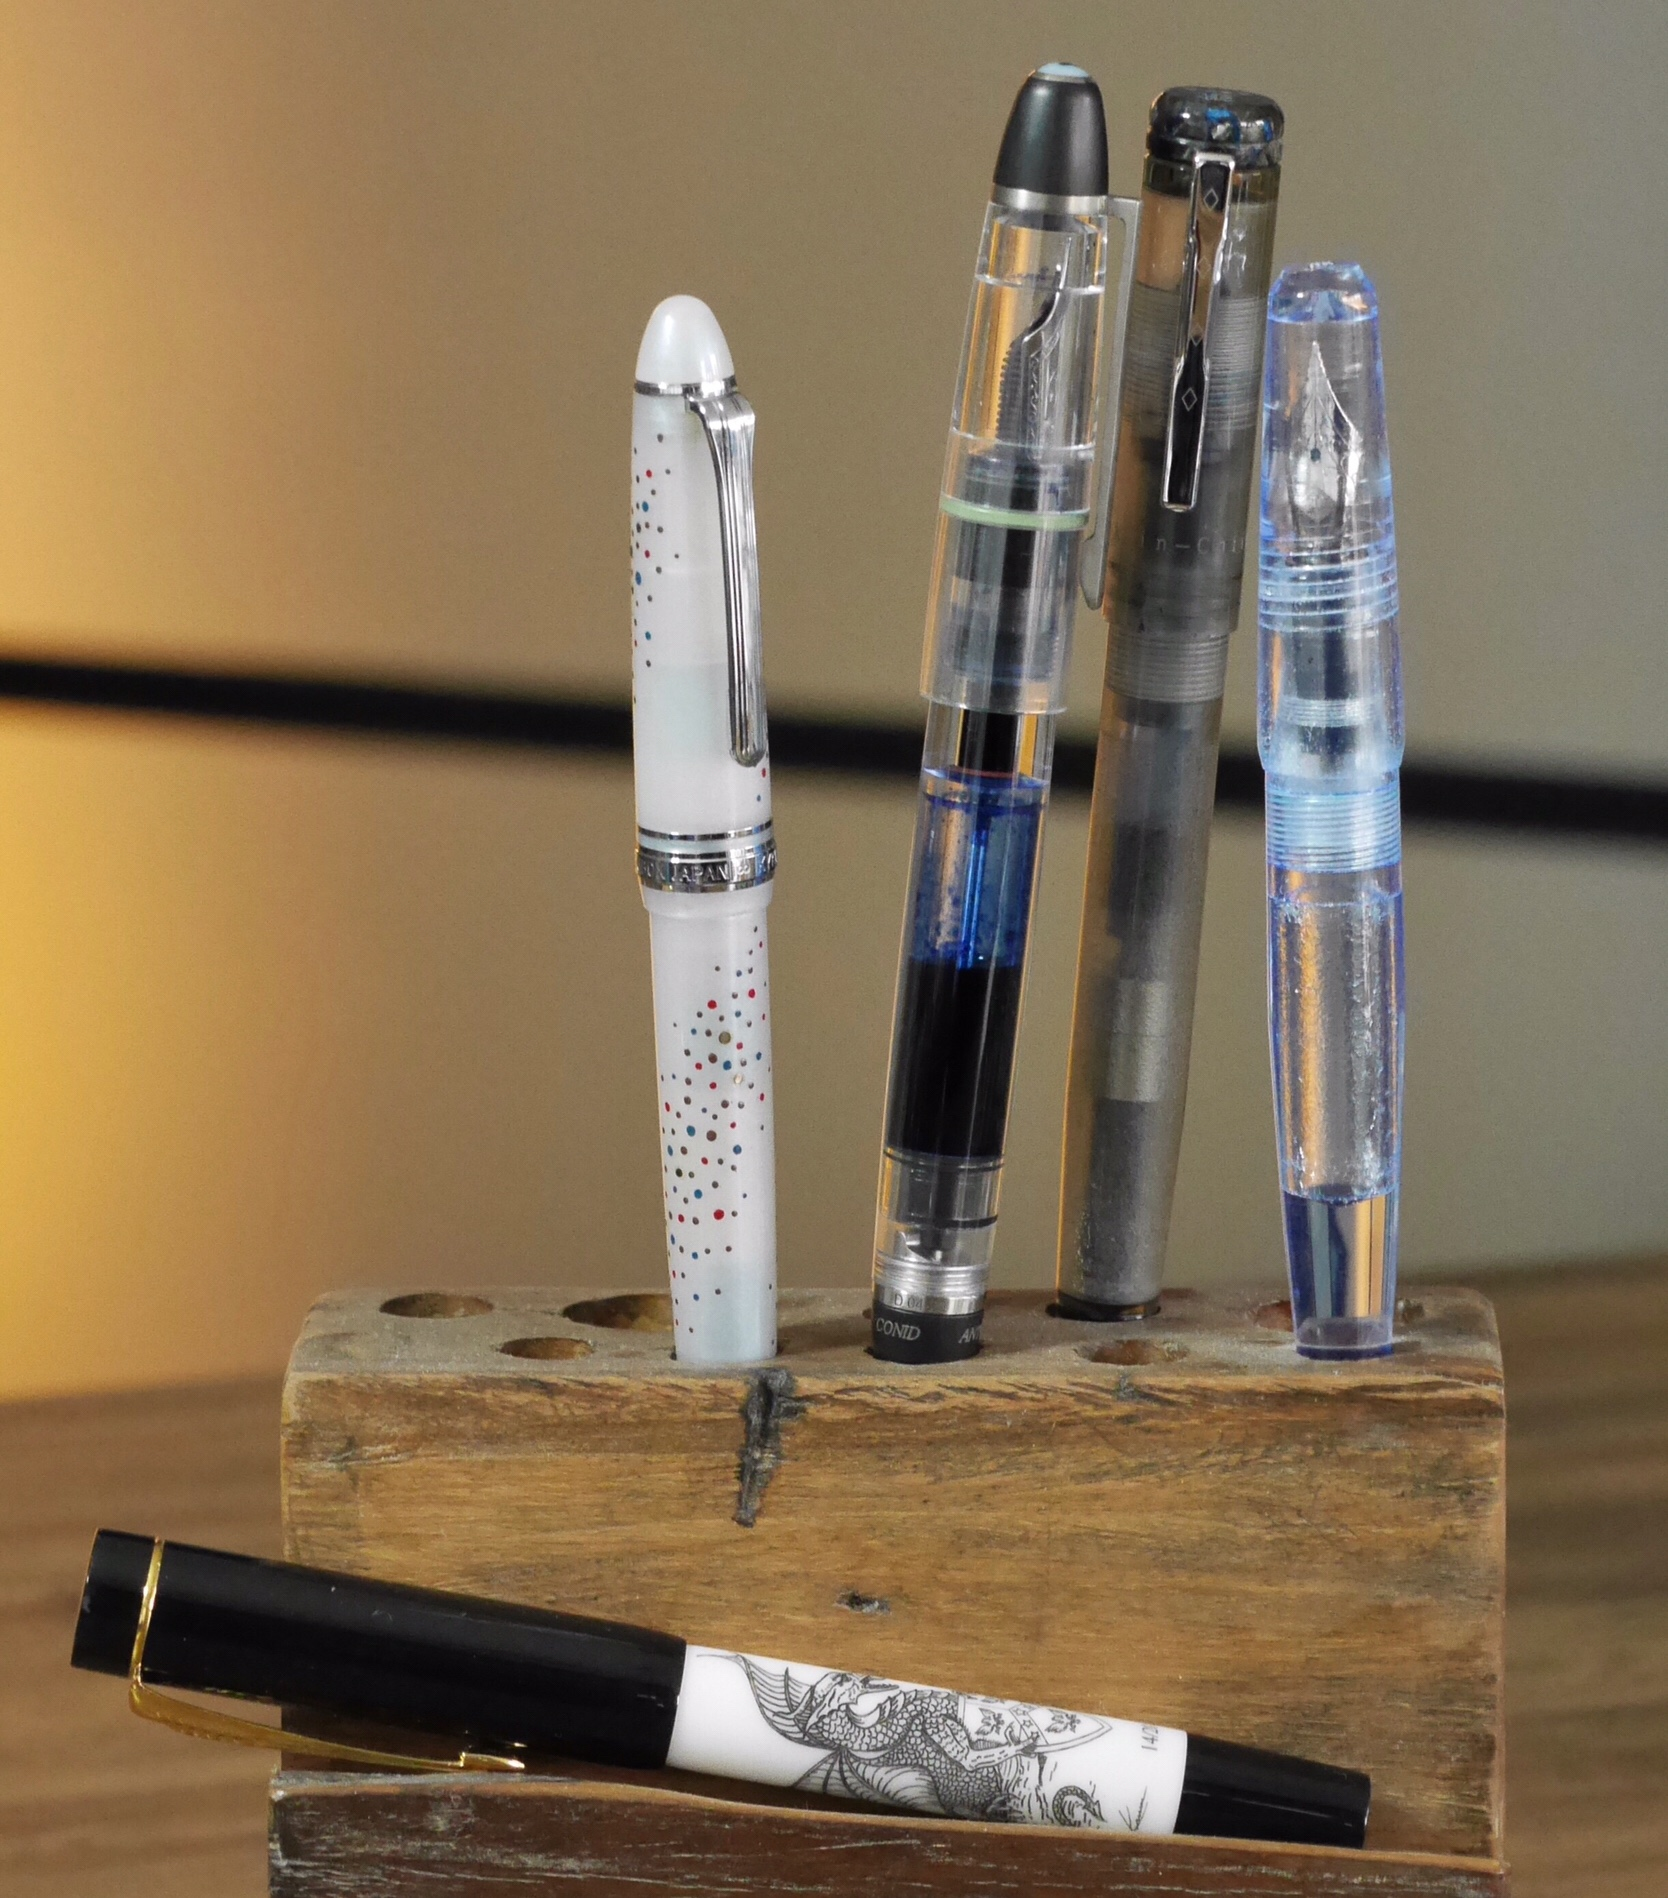 Artisanal, small batch pens